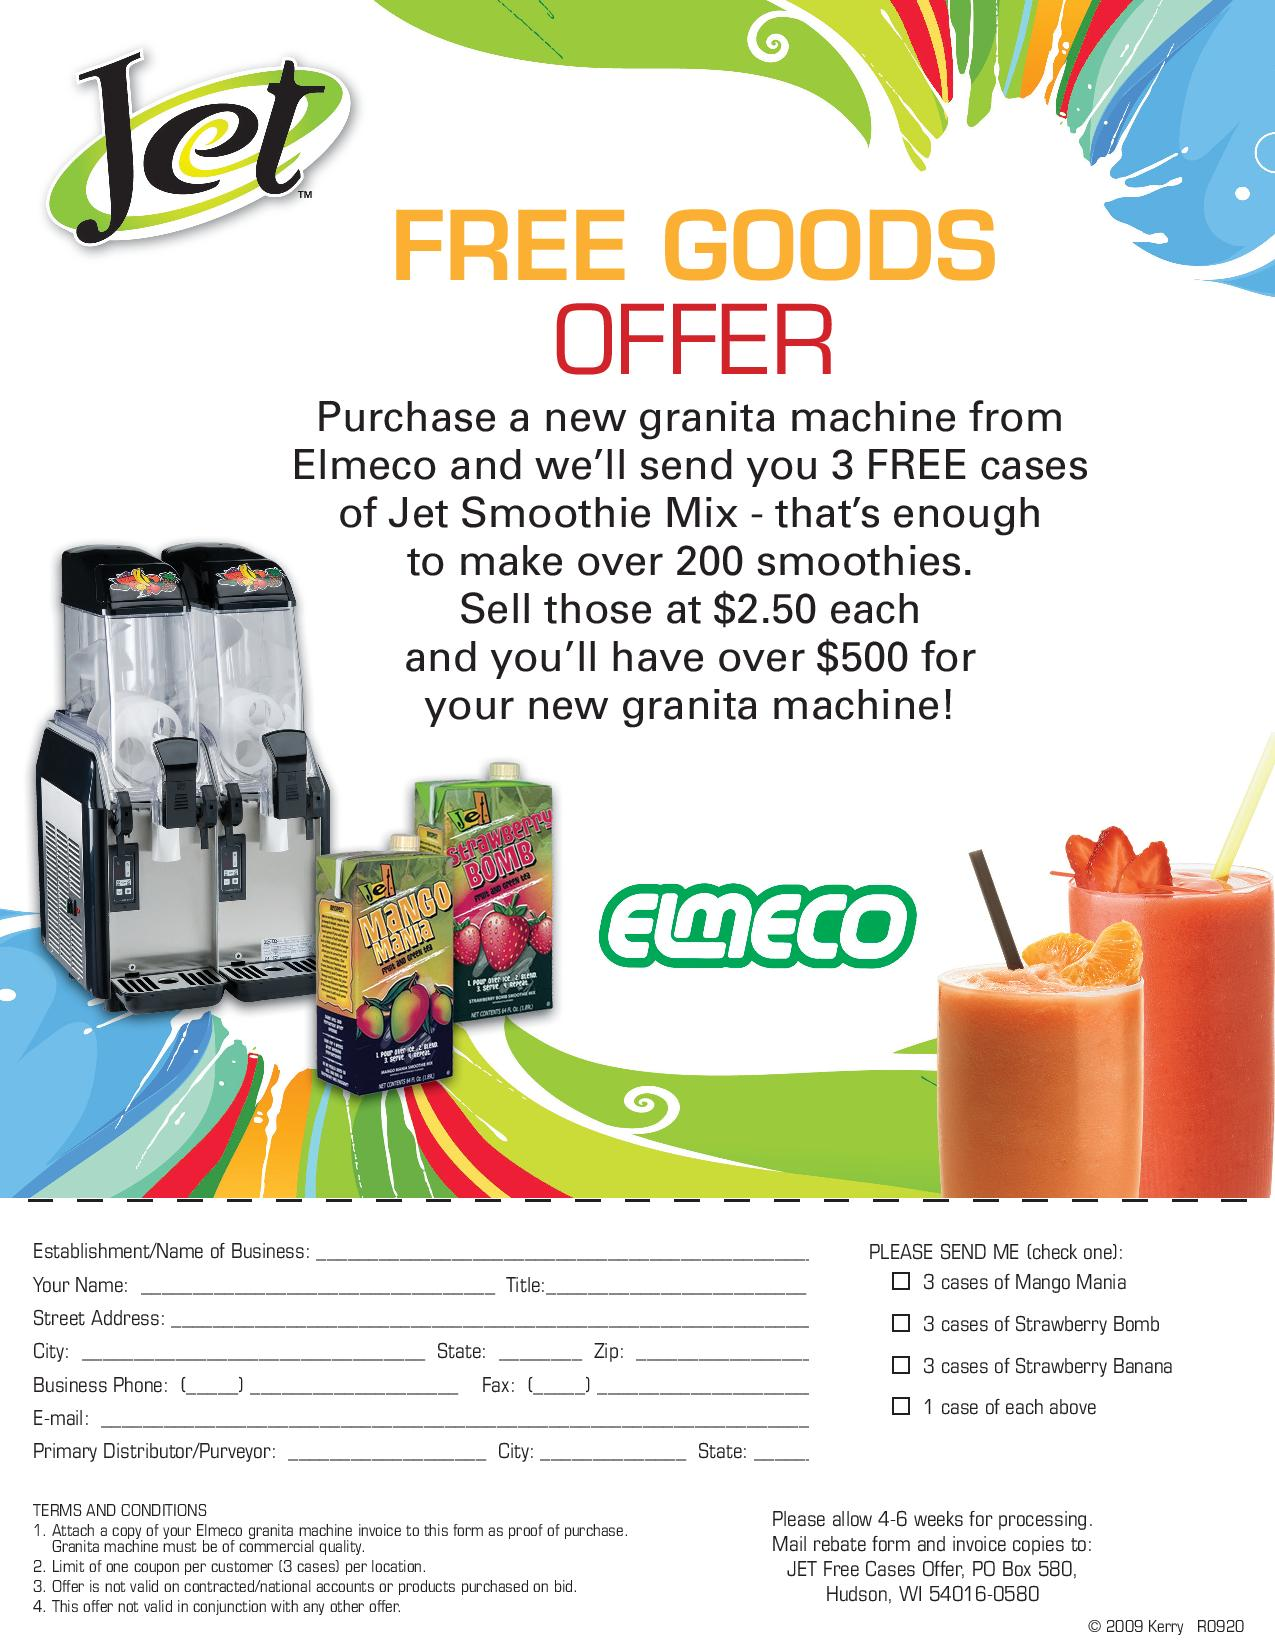 Jet Smoothie 3 free cases-page